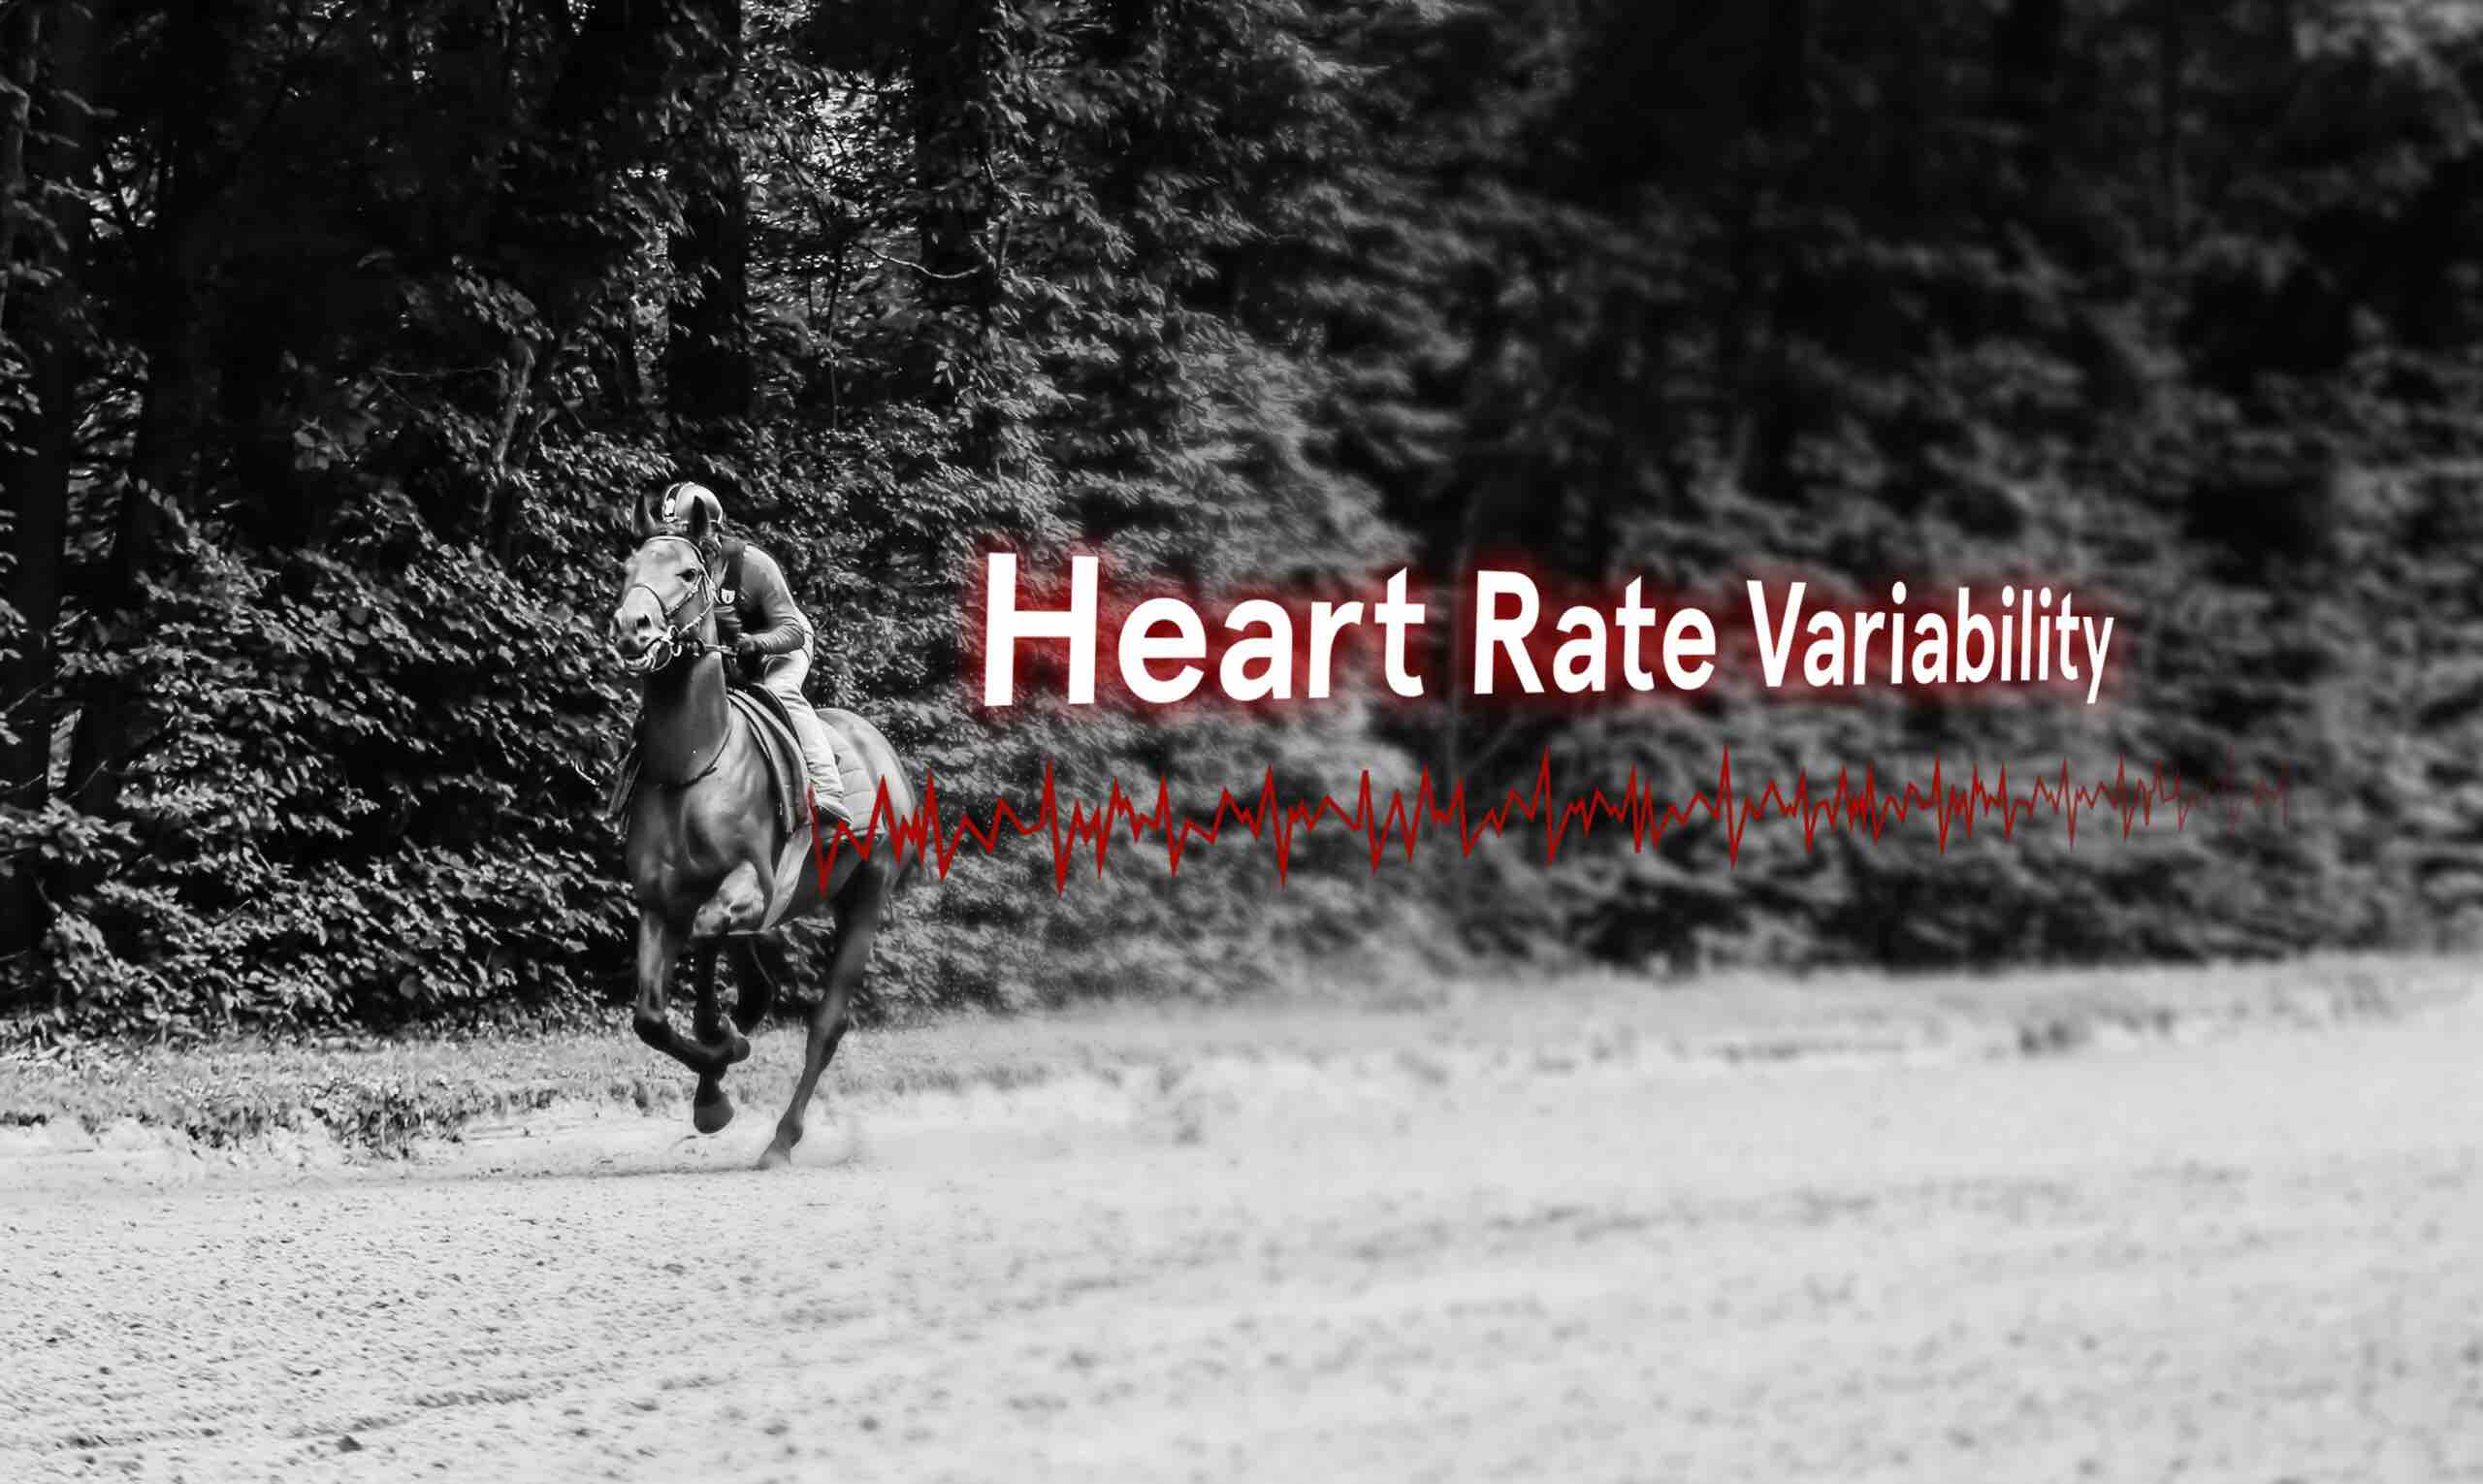 analyse heart rate variability with arioneo during racehorses training